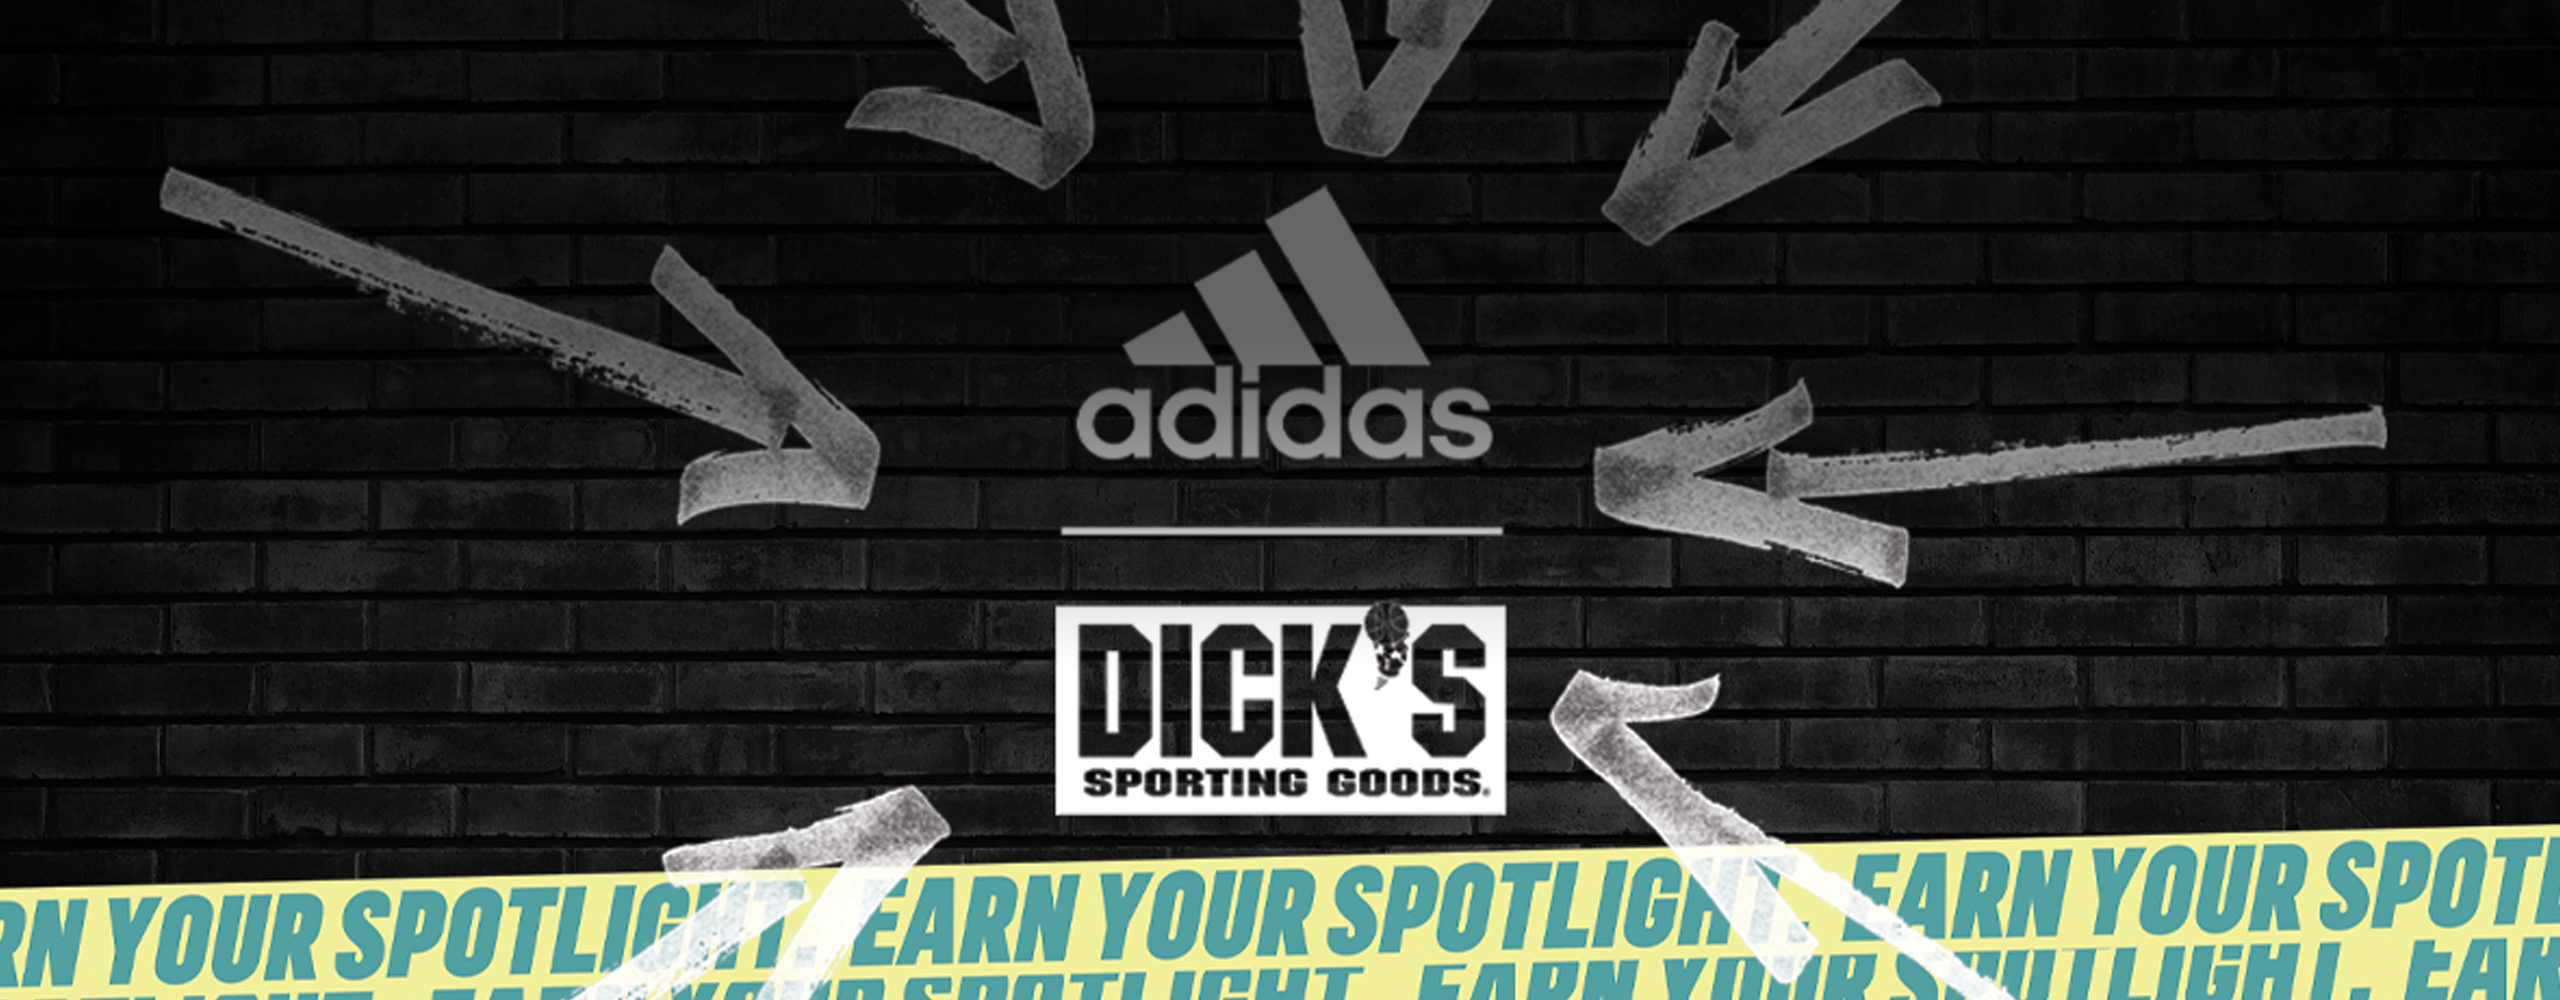 Adidas and Dick's Sporting Goods Earn Your Spotlight Production Banner